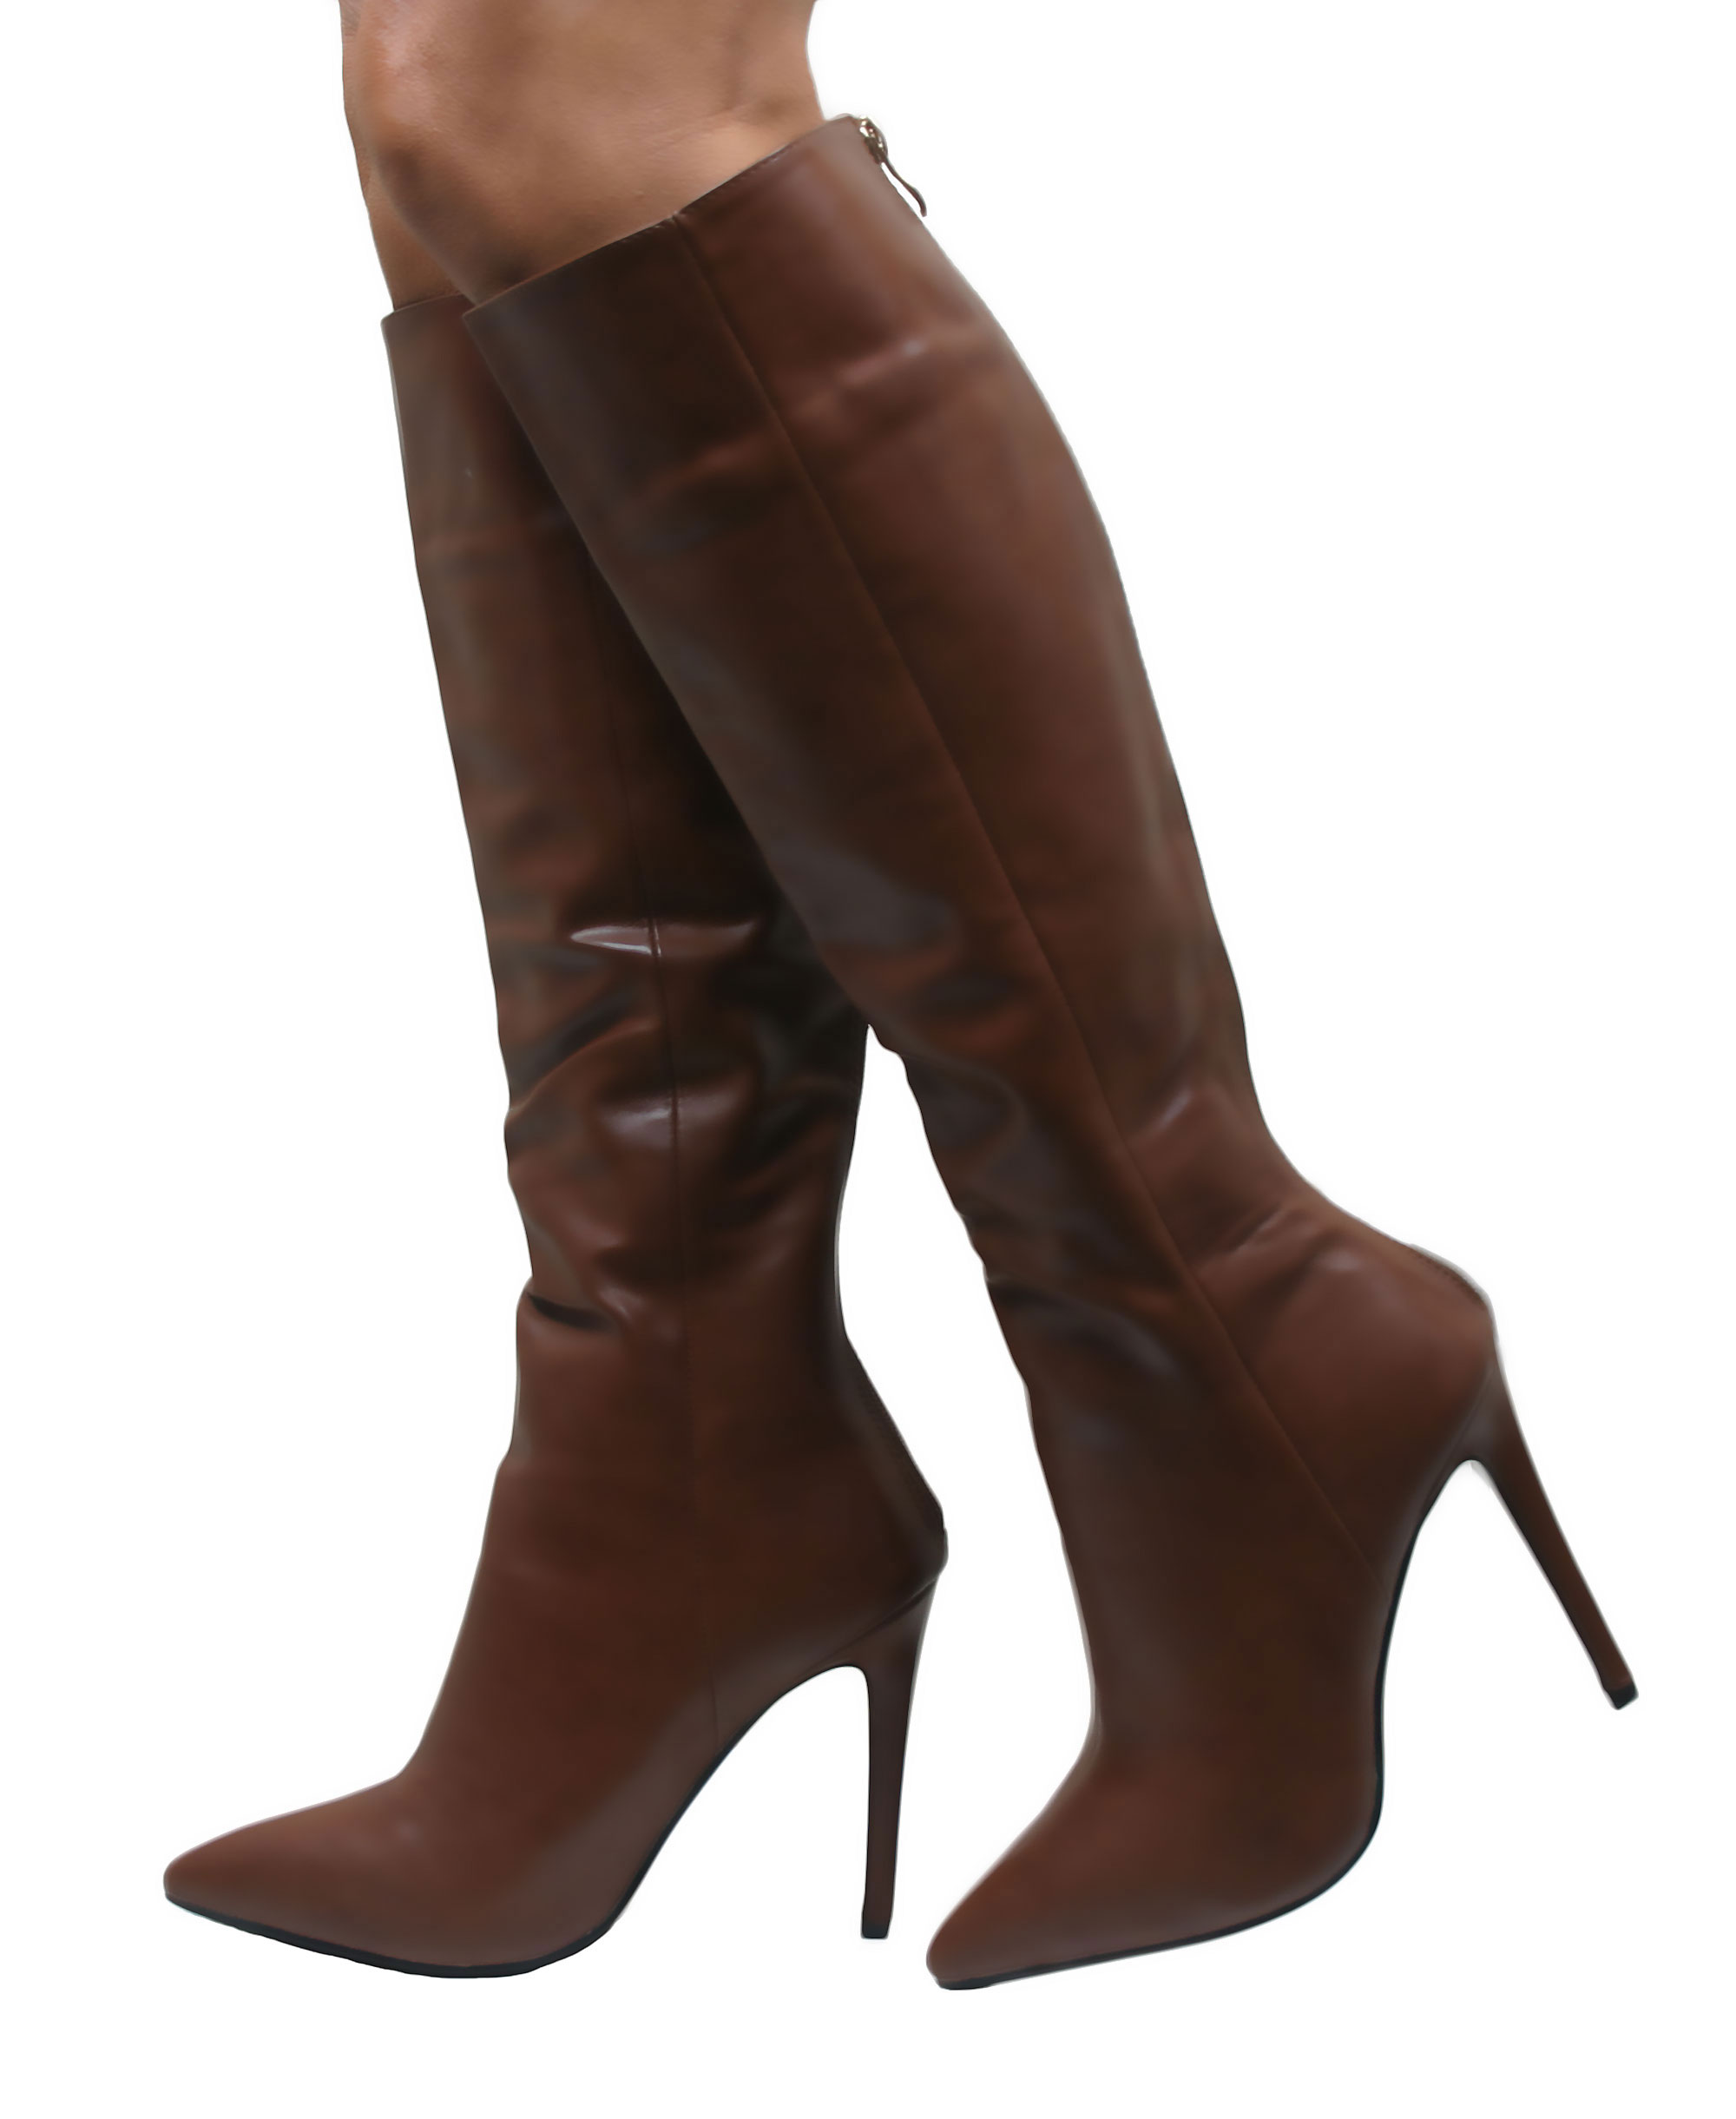 WOMENS VAMP WINTER PLATFORM STILETTO KNEE HIGH HEEL LONG BOOT ...